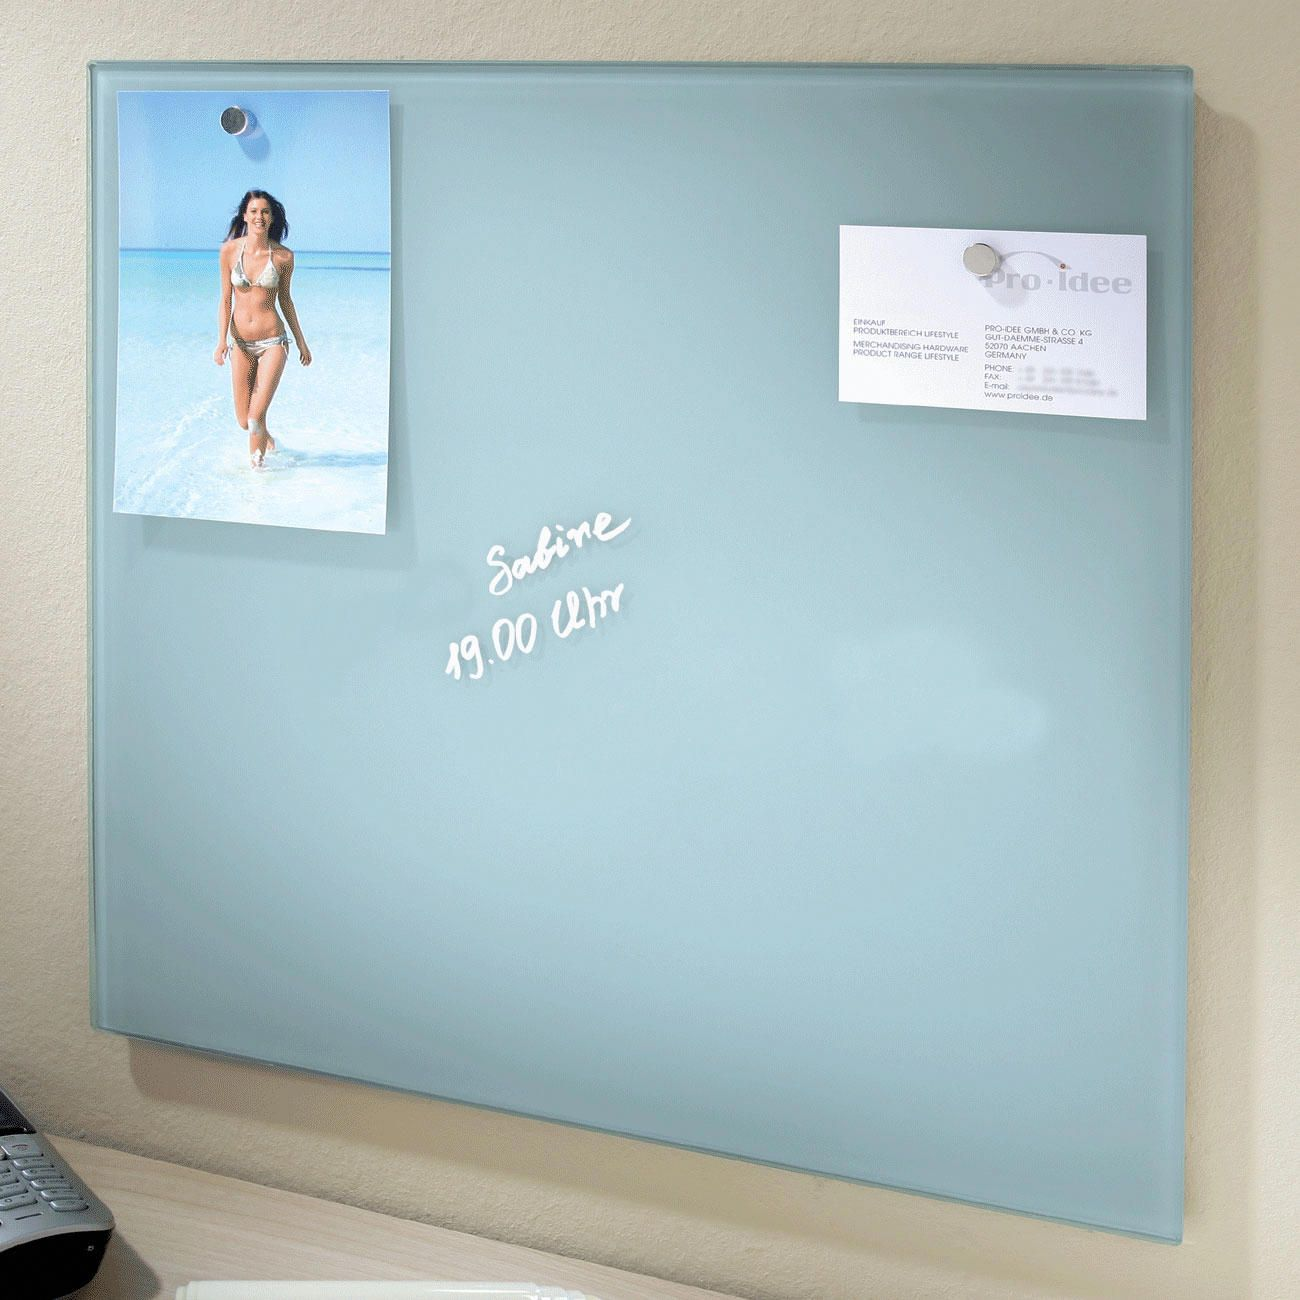 Magnetic Glass Board Finally a notice board in a cool design ...